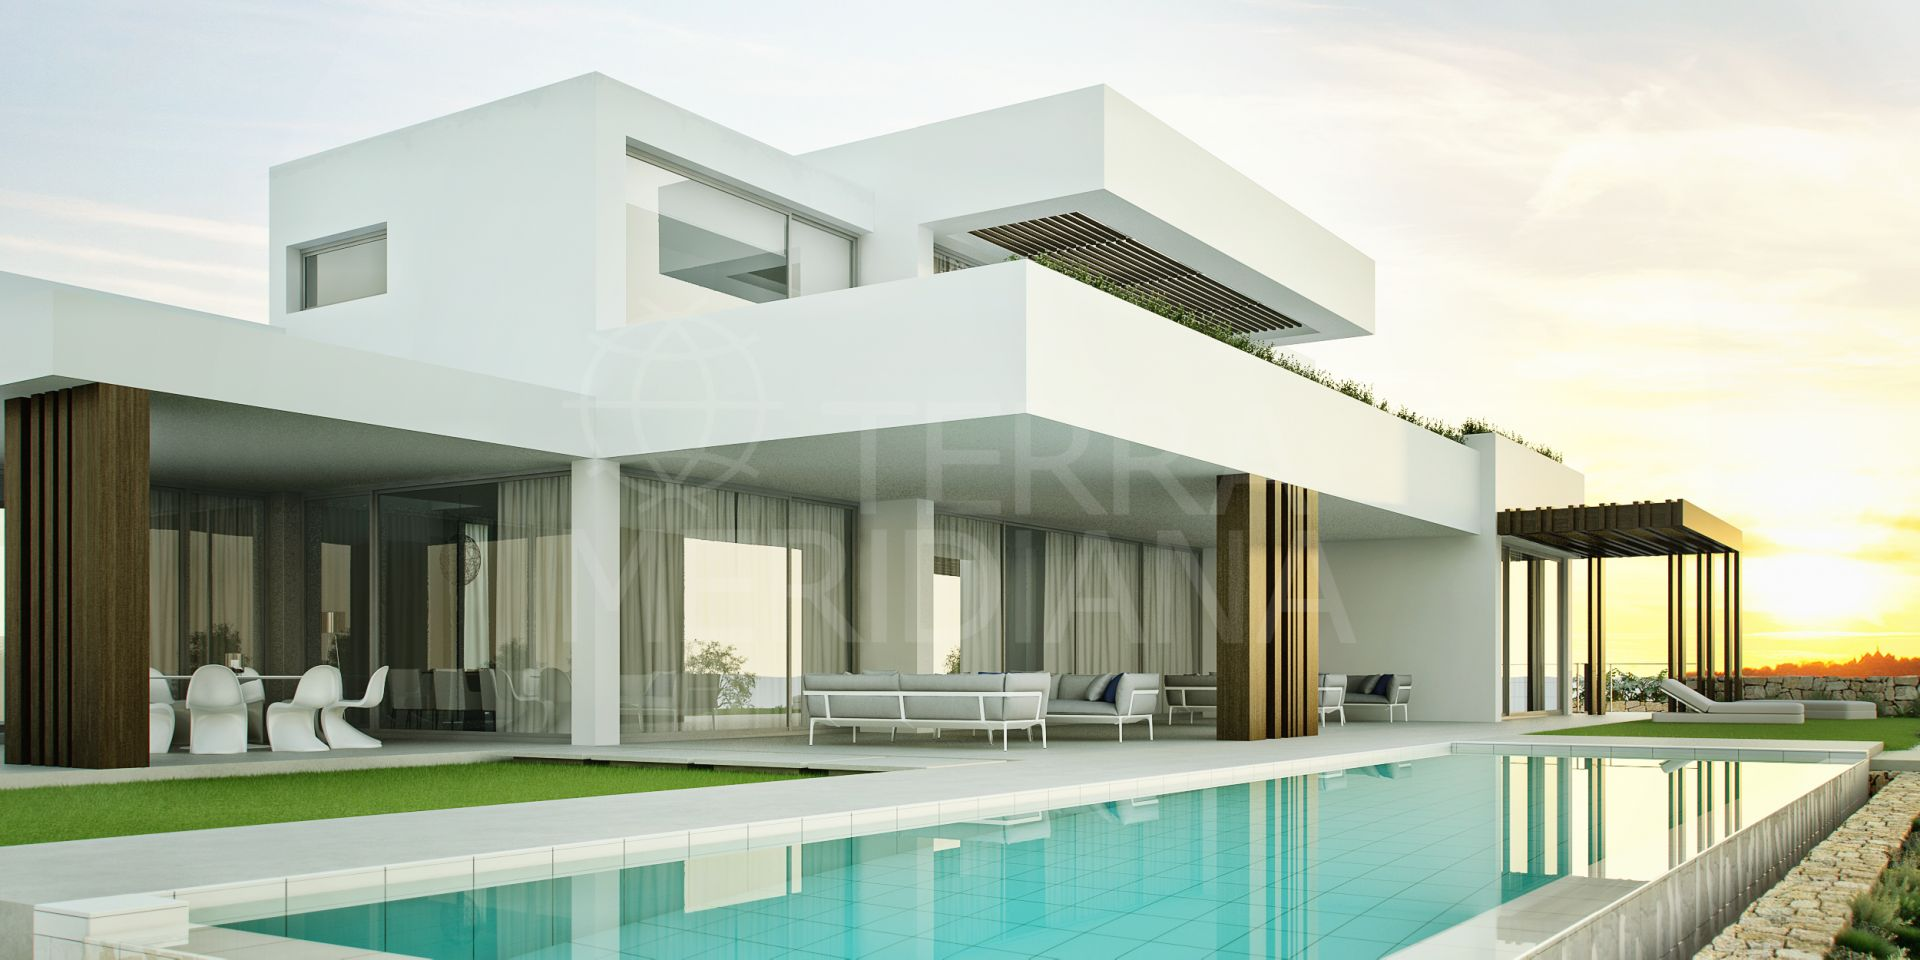 Off plan project for sale in La Reserva, Sotogrande, 6 bedroom luxury villa with garage, private pool and sea views